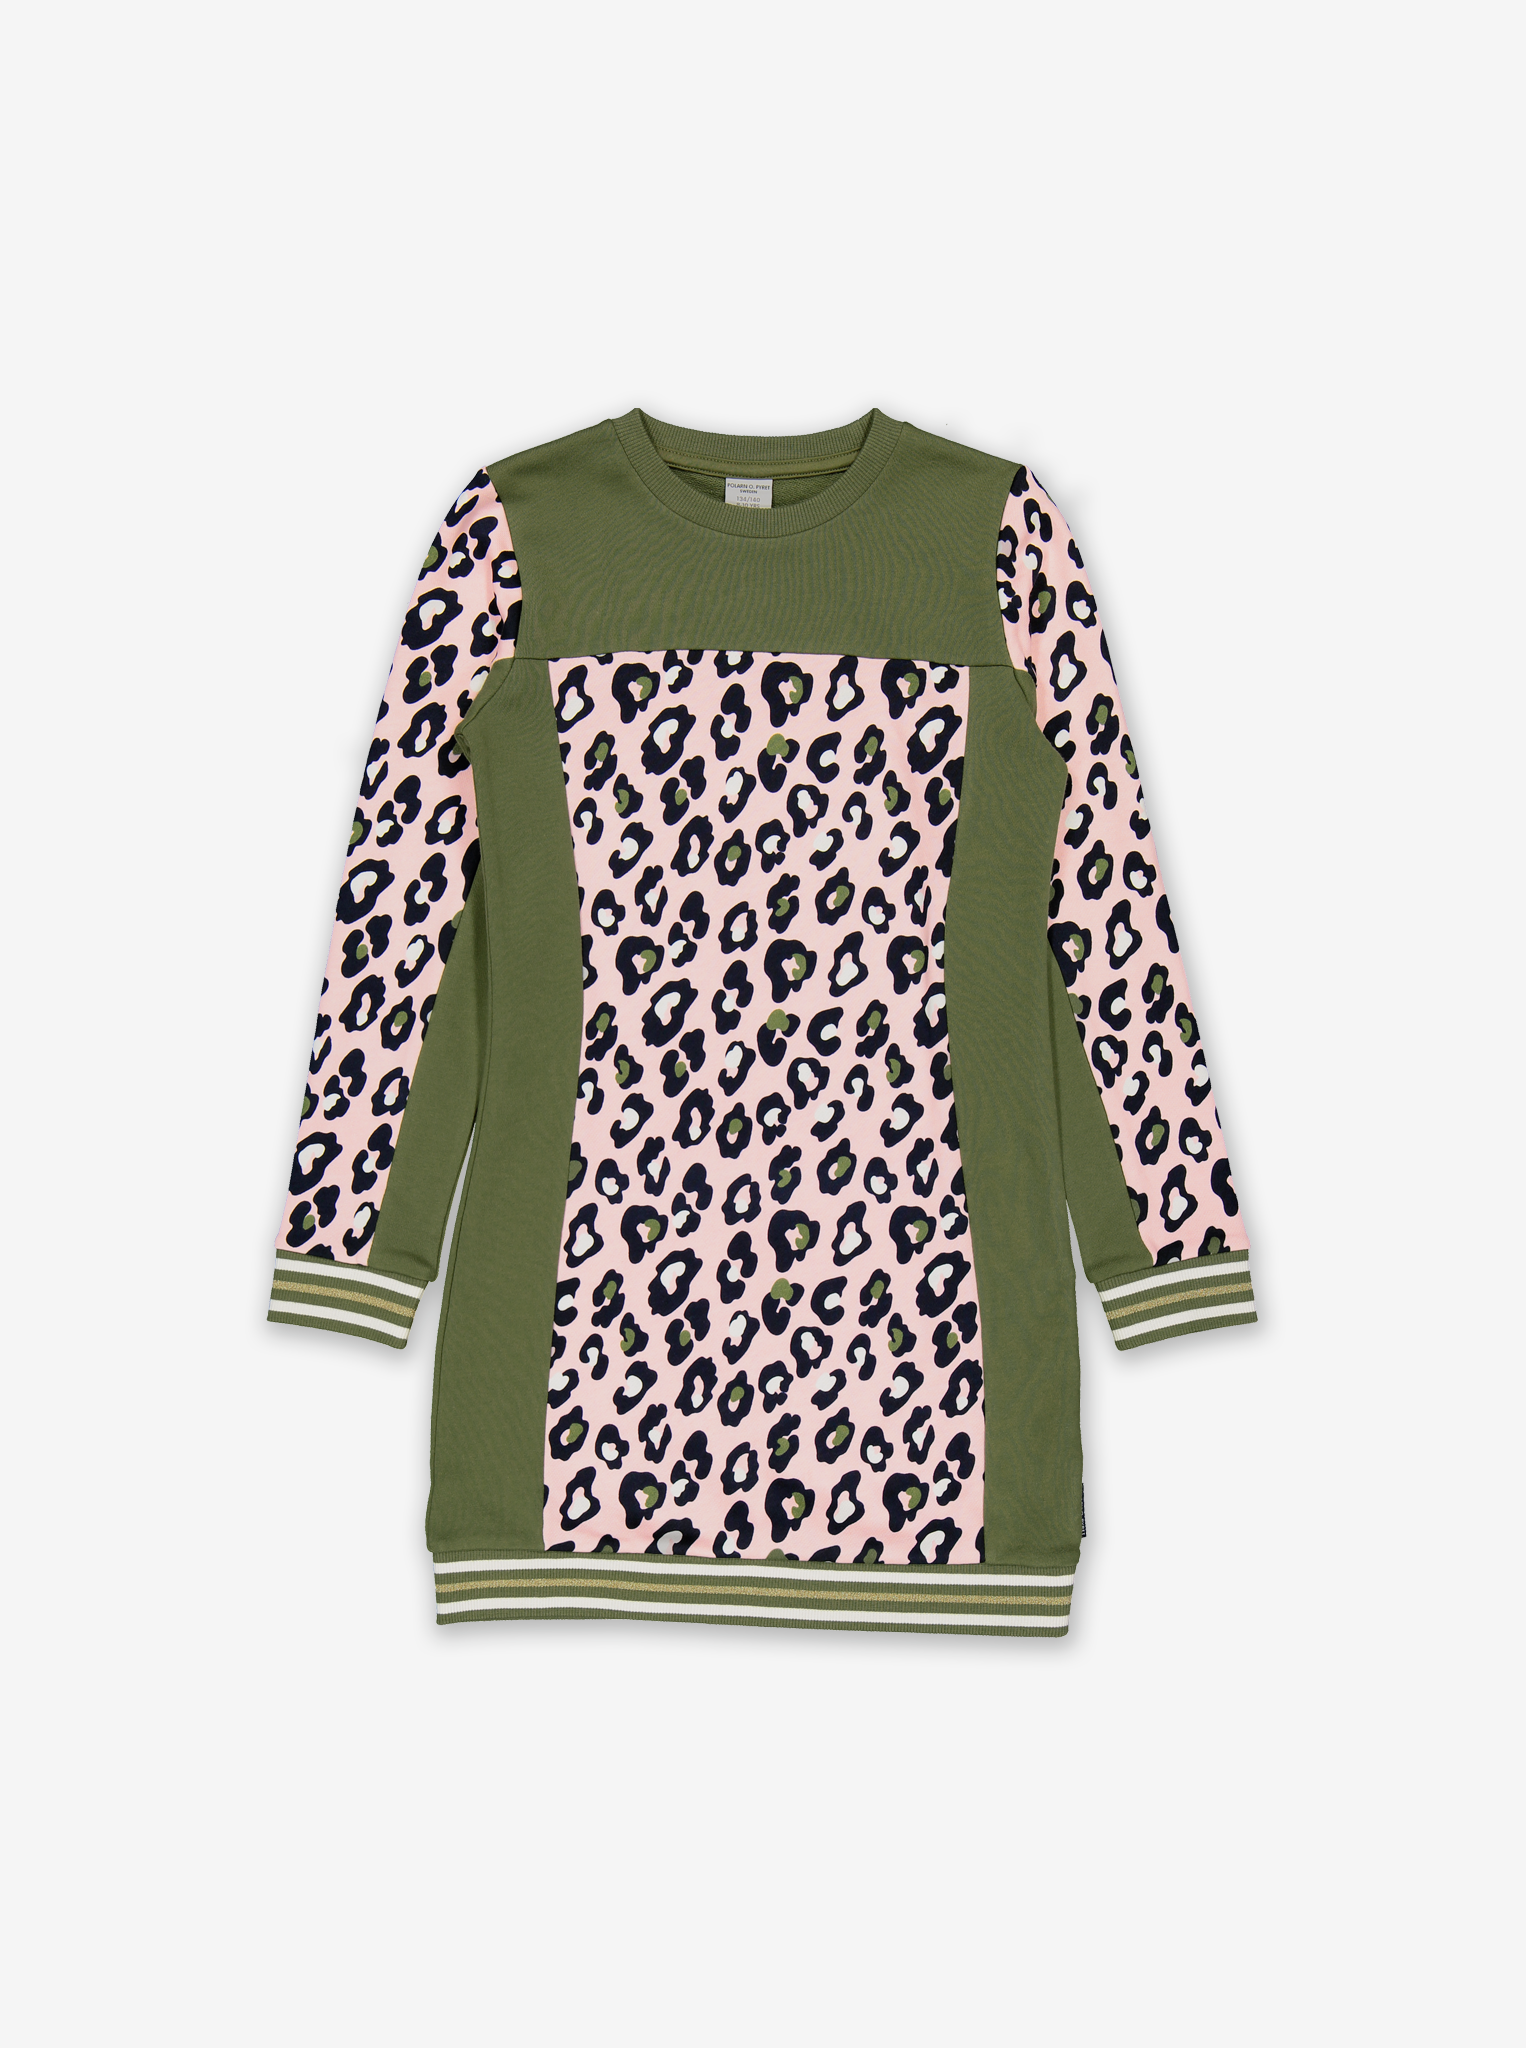 Leopard Print Kids Dress-Girl-6-12y-Green